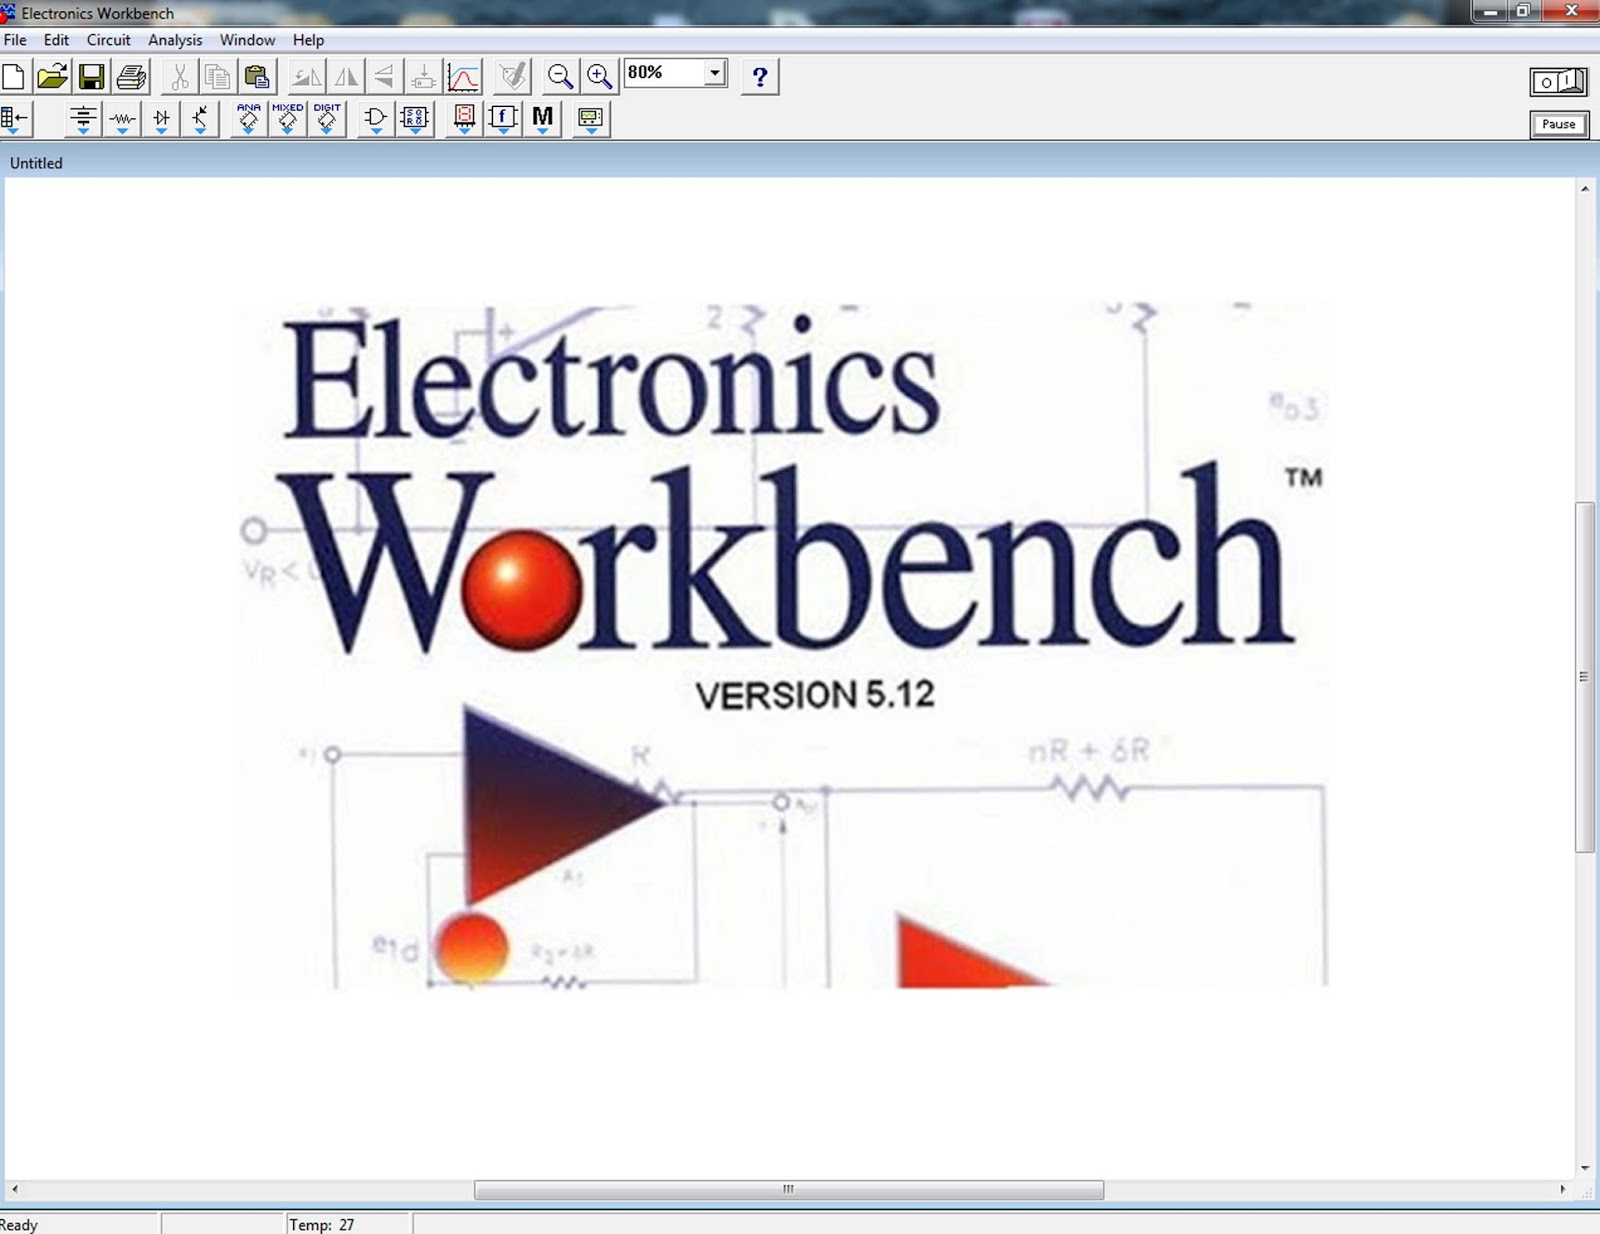 electronic workbench 5.12 gratuit